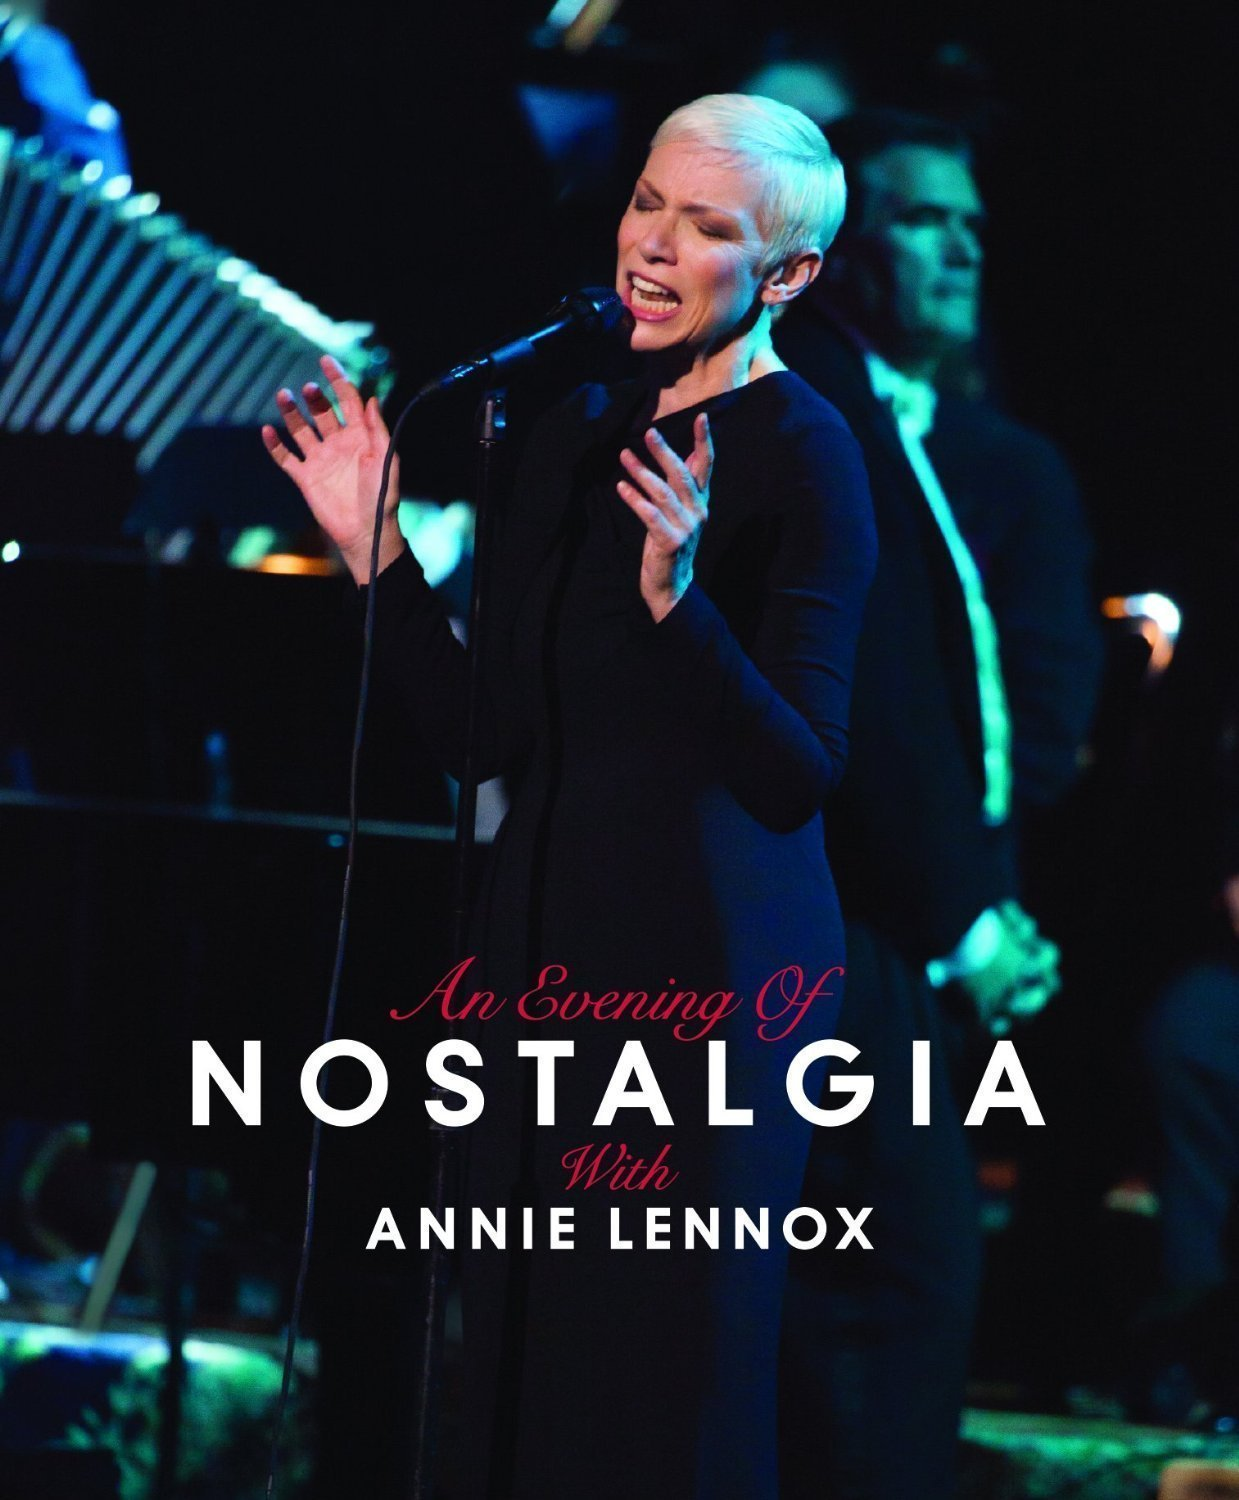 Bob mersereau 39 s top 100 canadian blog music review of the - Annie lennox diva album cover ...